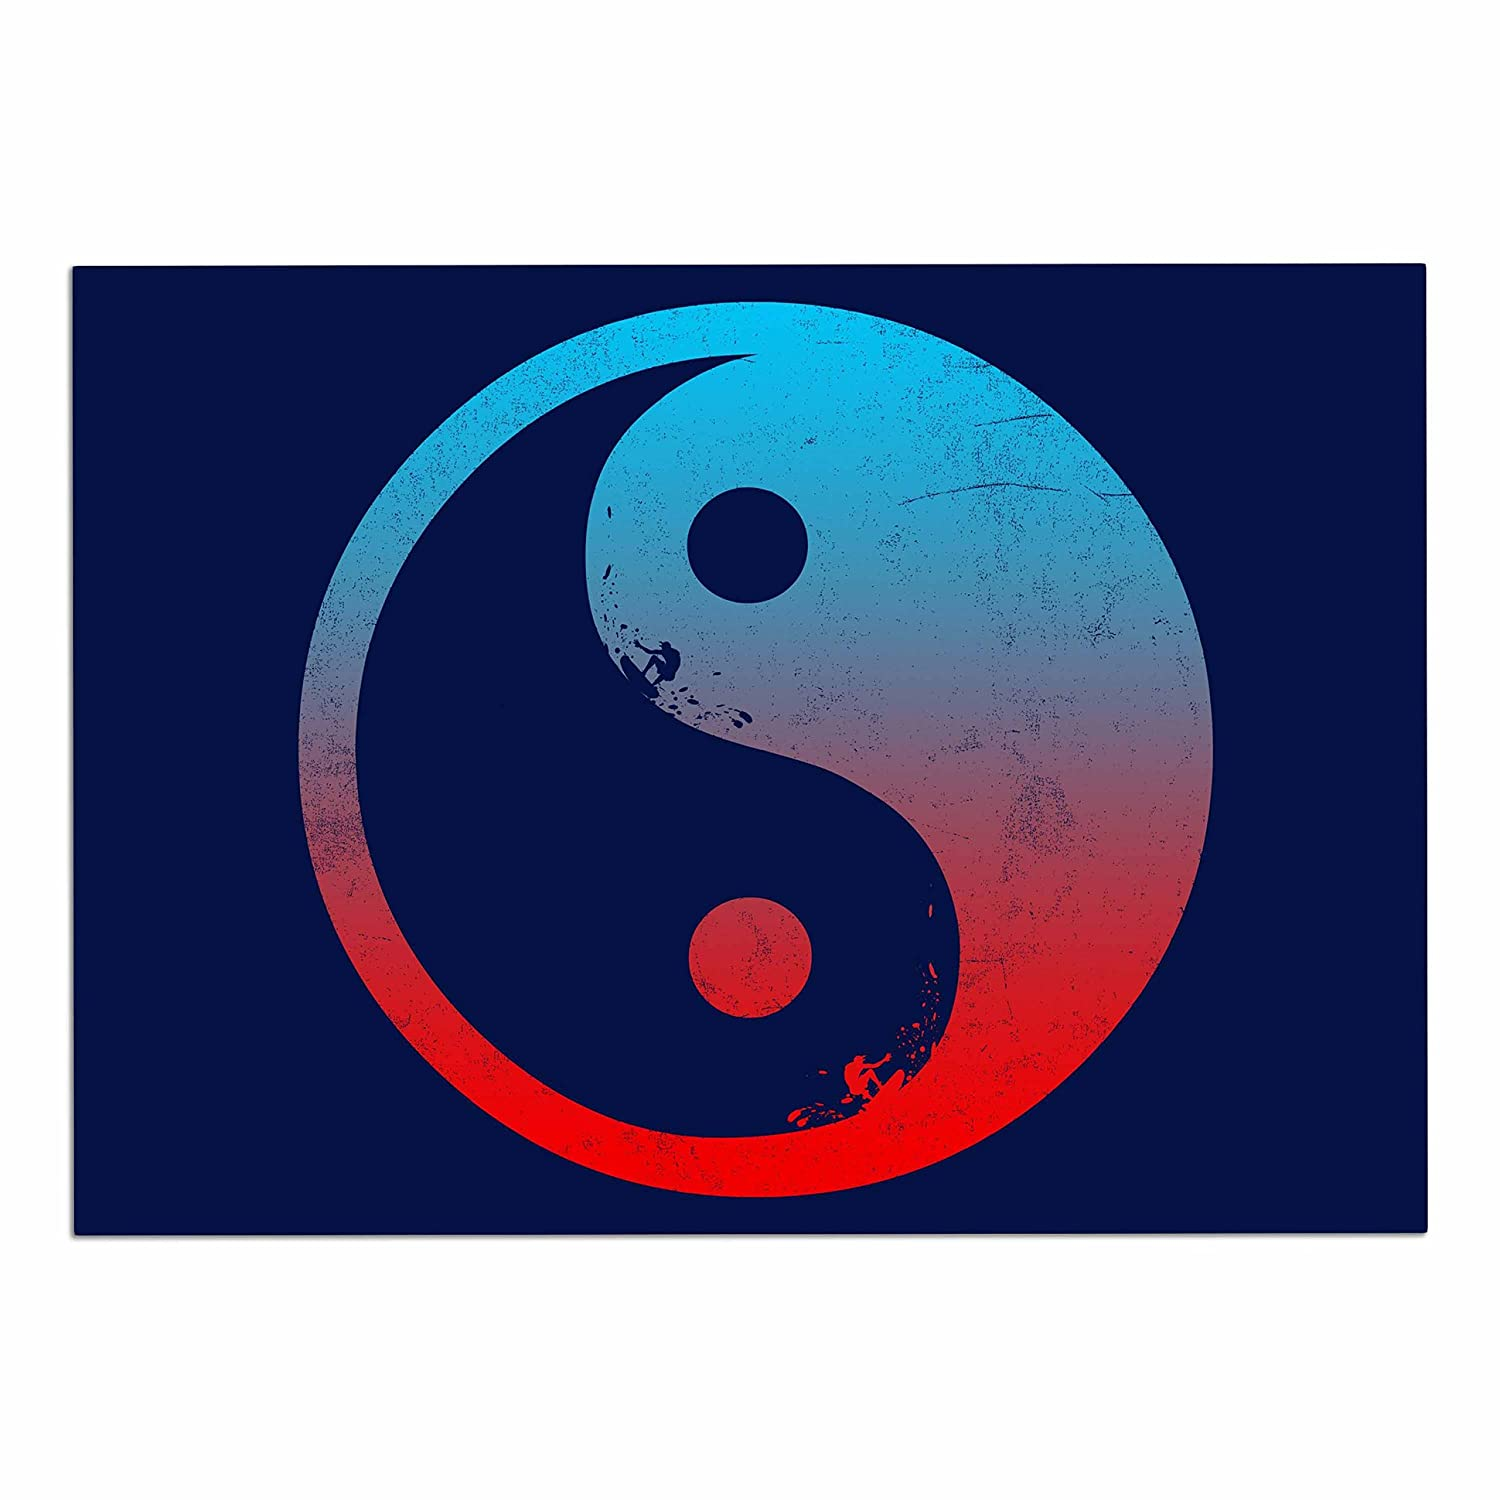 KESS InHouse FH1048ADM02 Federic Levy-Hadida Ying Yang Surfers Red bluee Dog Place Mat, 24  x 15